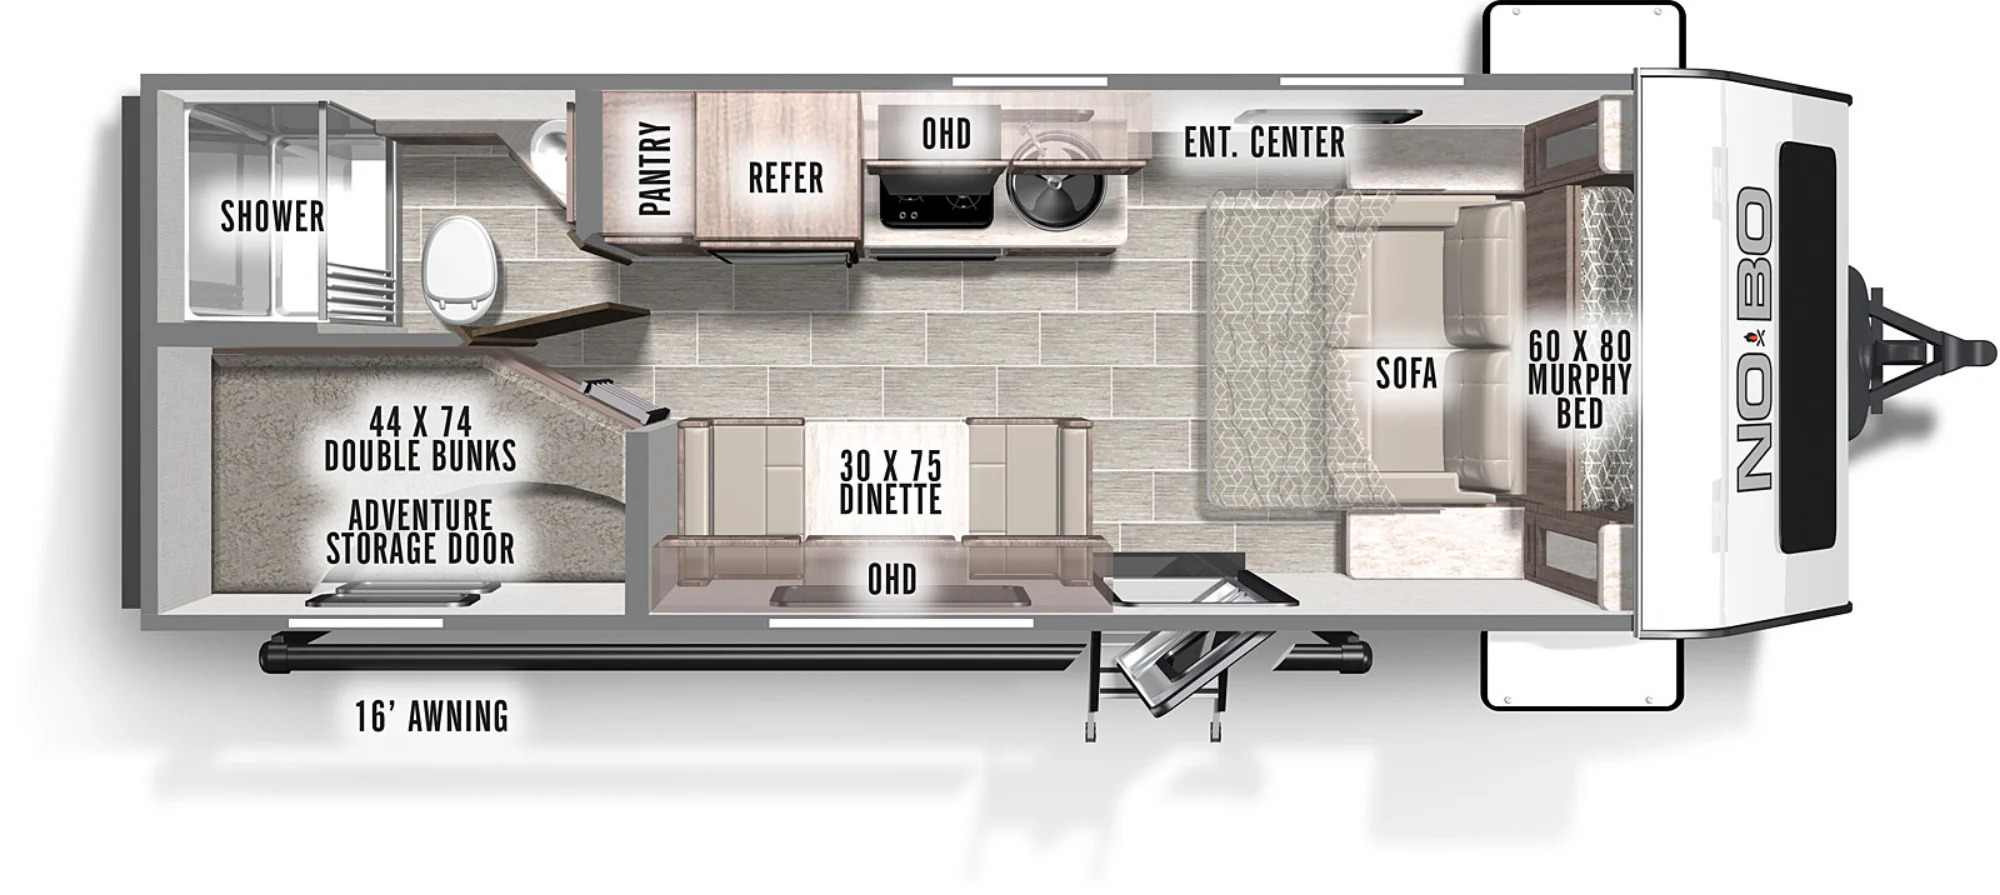 View Floor Plan for 2022 FOREST RIVER NO BOUNDARIES 19.3